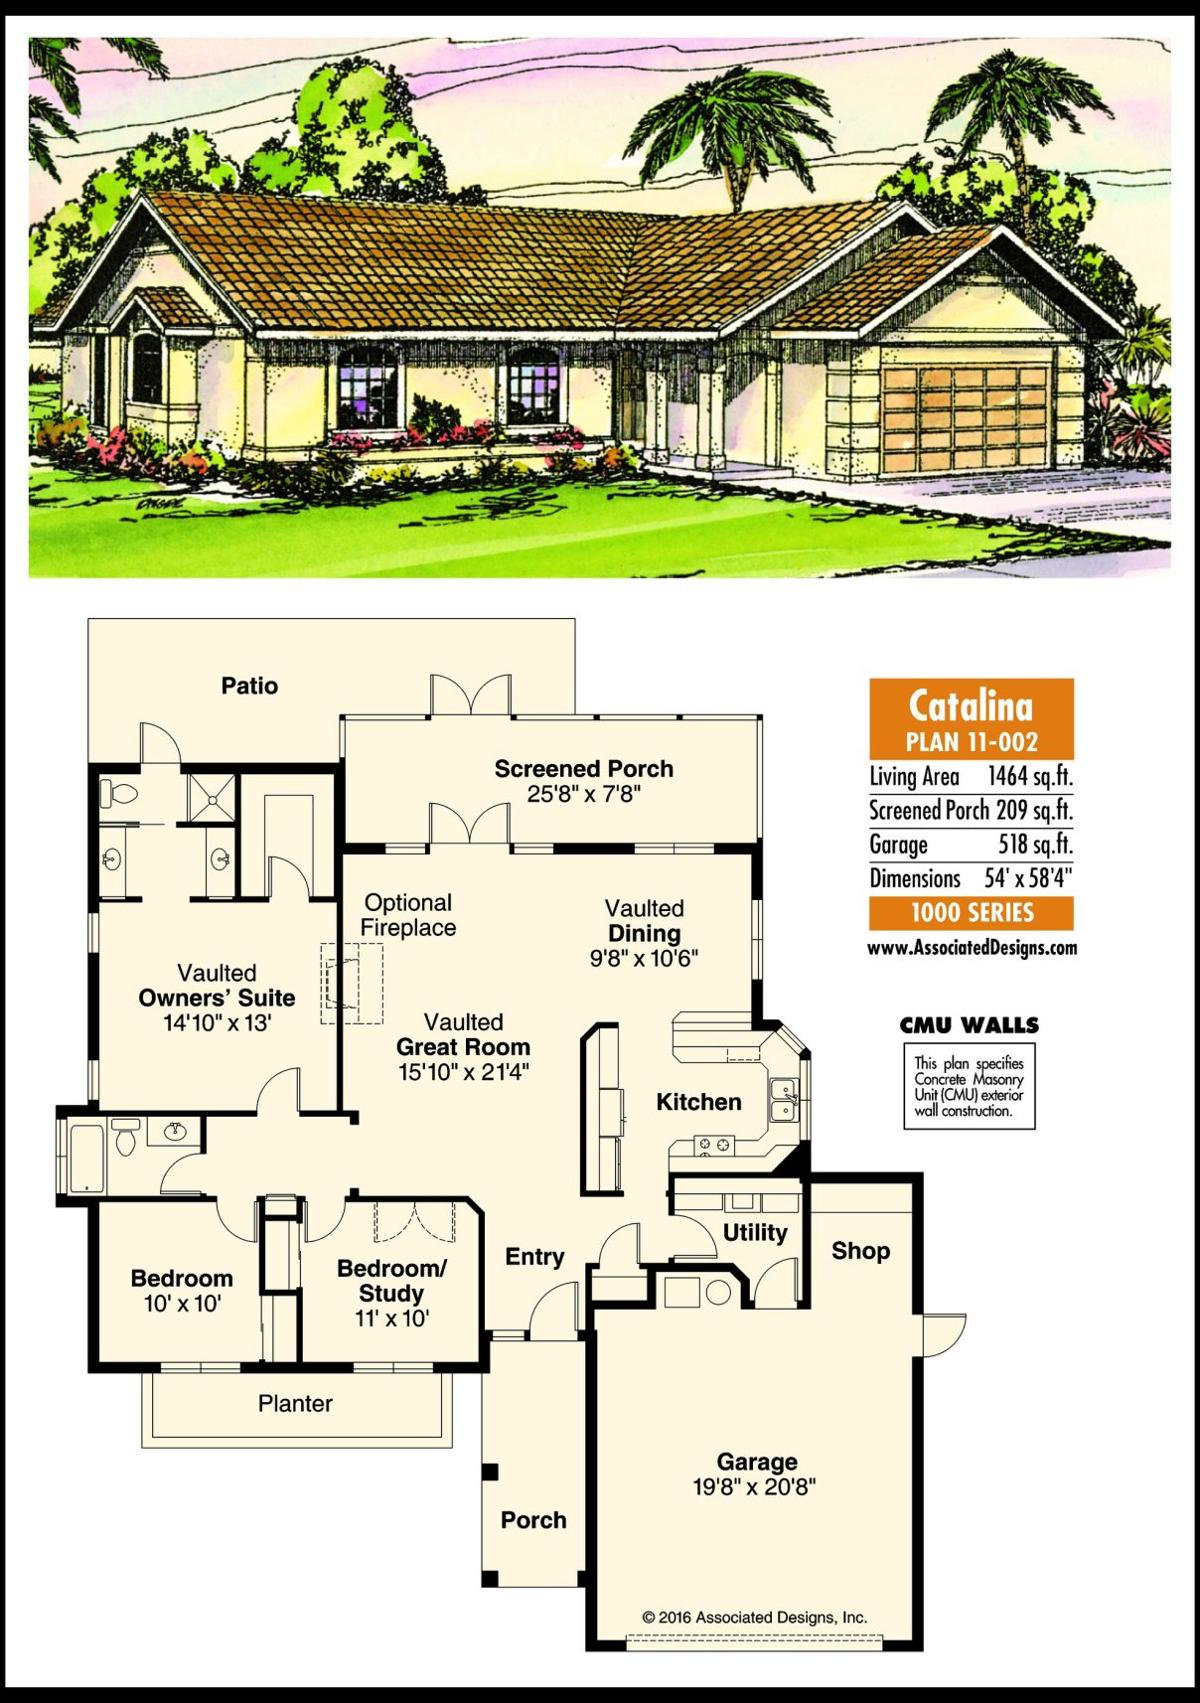 This week's house plan Catalina 11-002